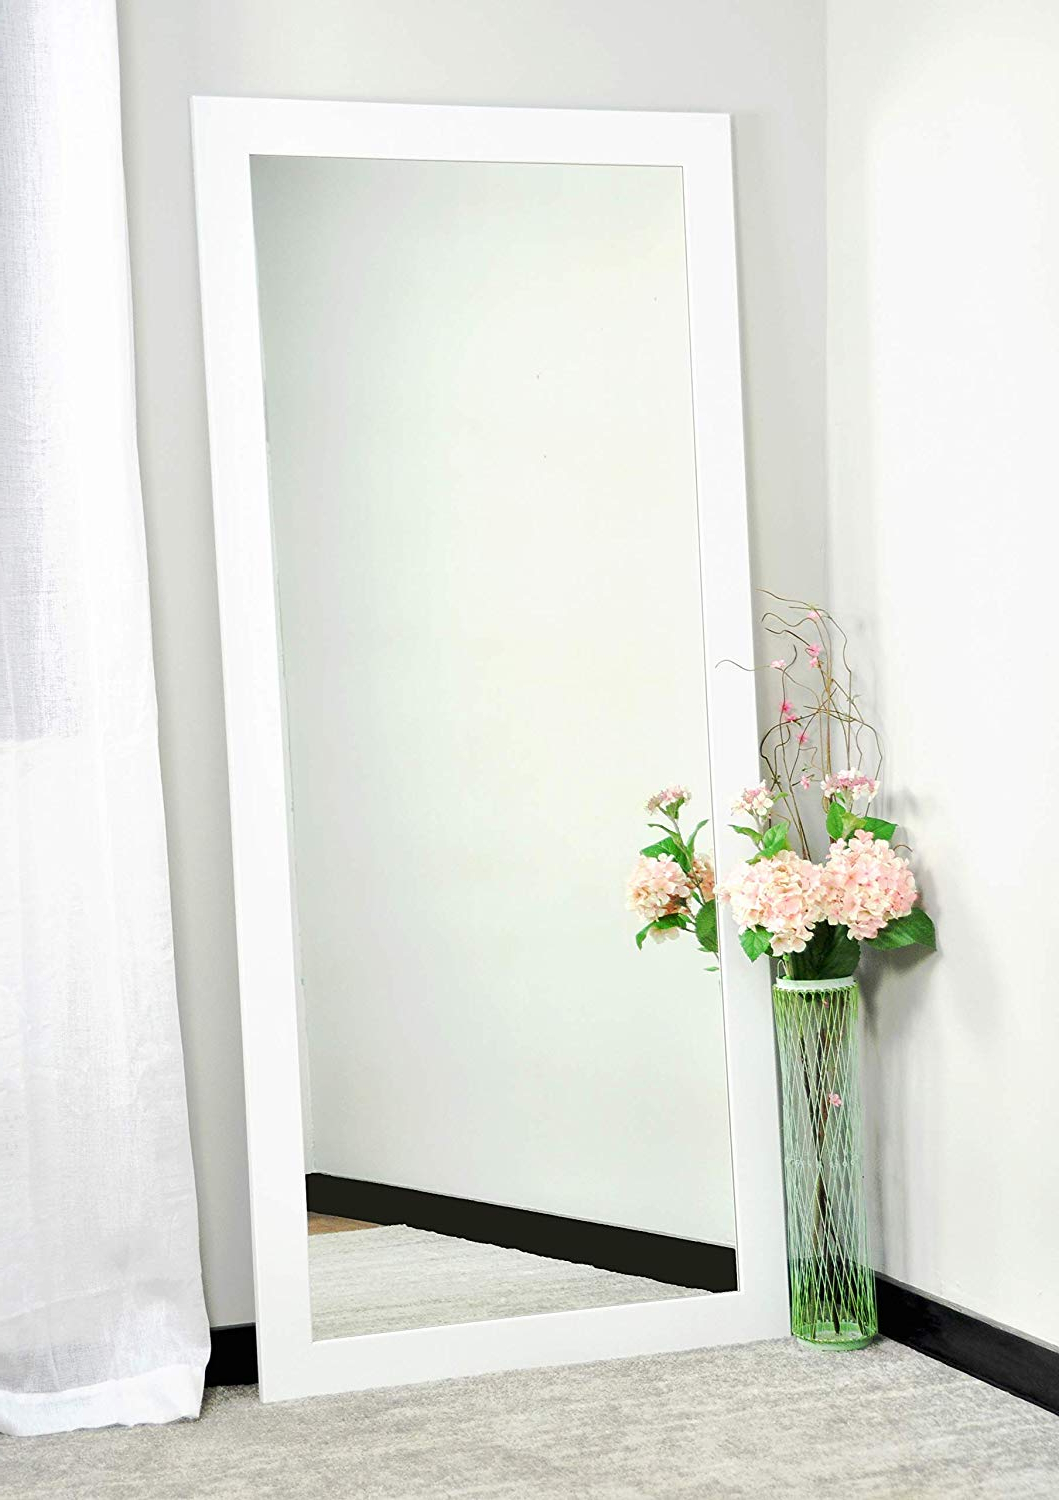 """Well Known Brandtworks, Llc Bm003t Oversized Wall Mirror, 32"""" X 71"""", White,32"""" X 71"""" Throughout Giant Wall Mirrors (View 18 of 20)"""